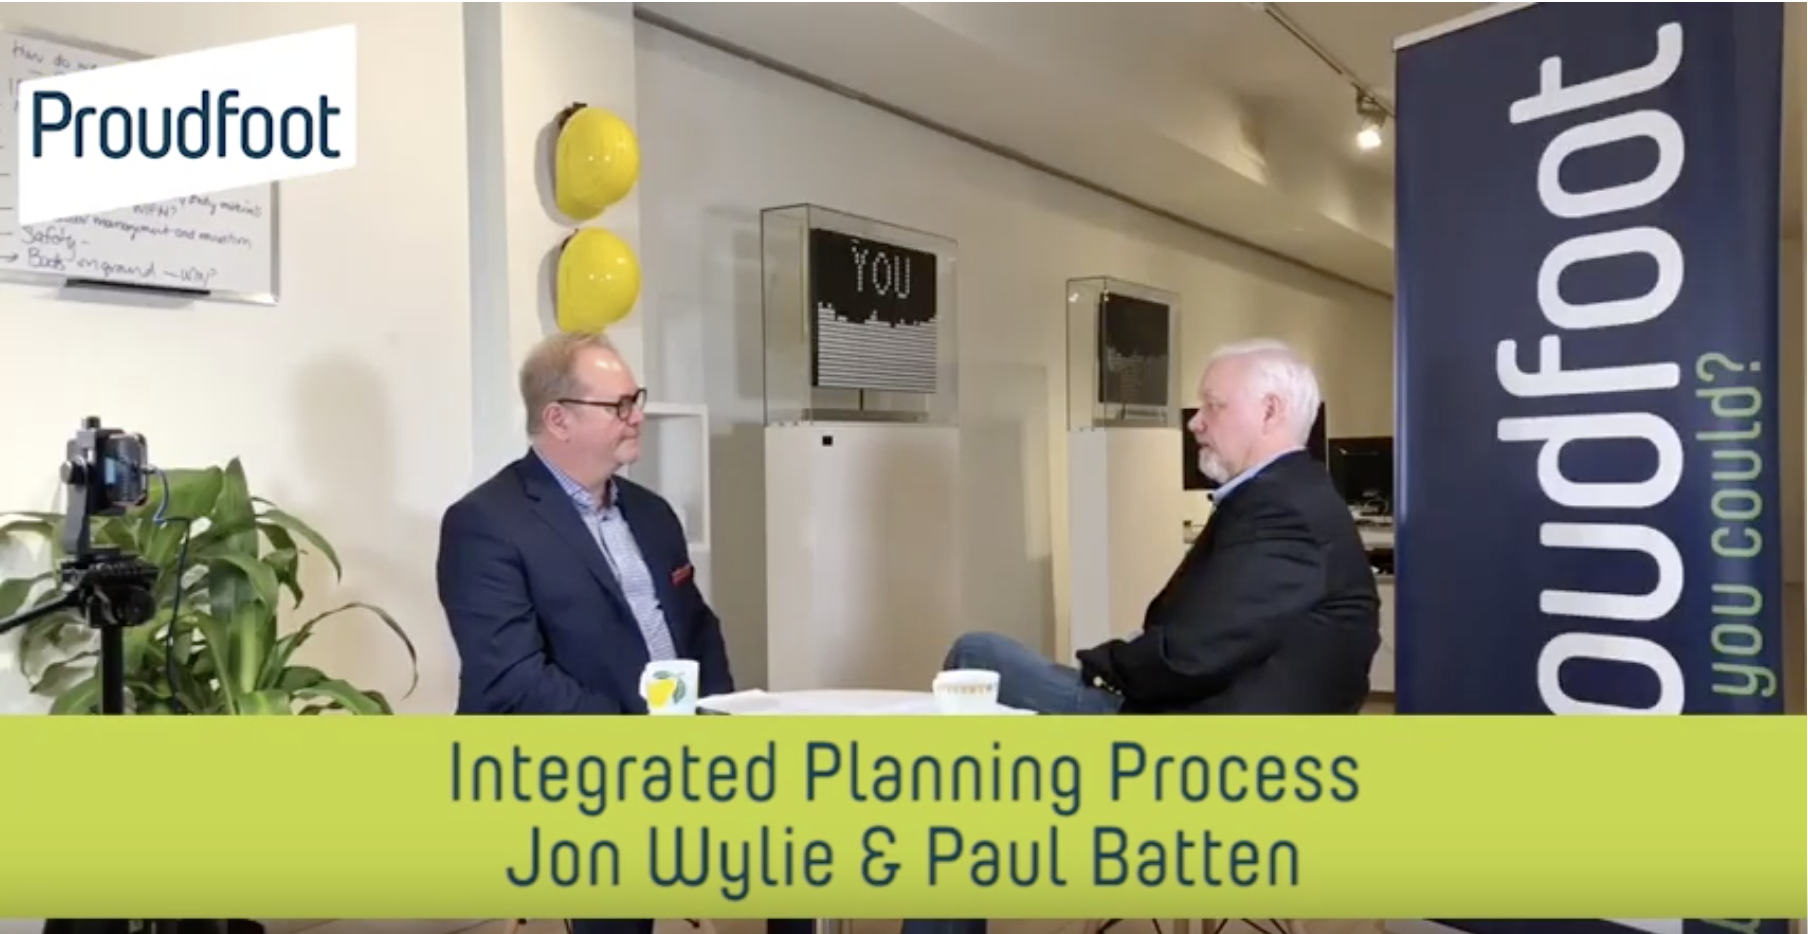 Proudfoot Integrated Planning Process